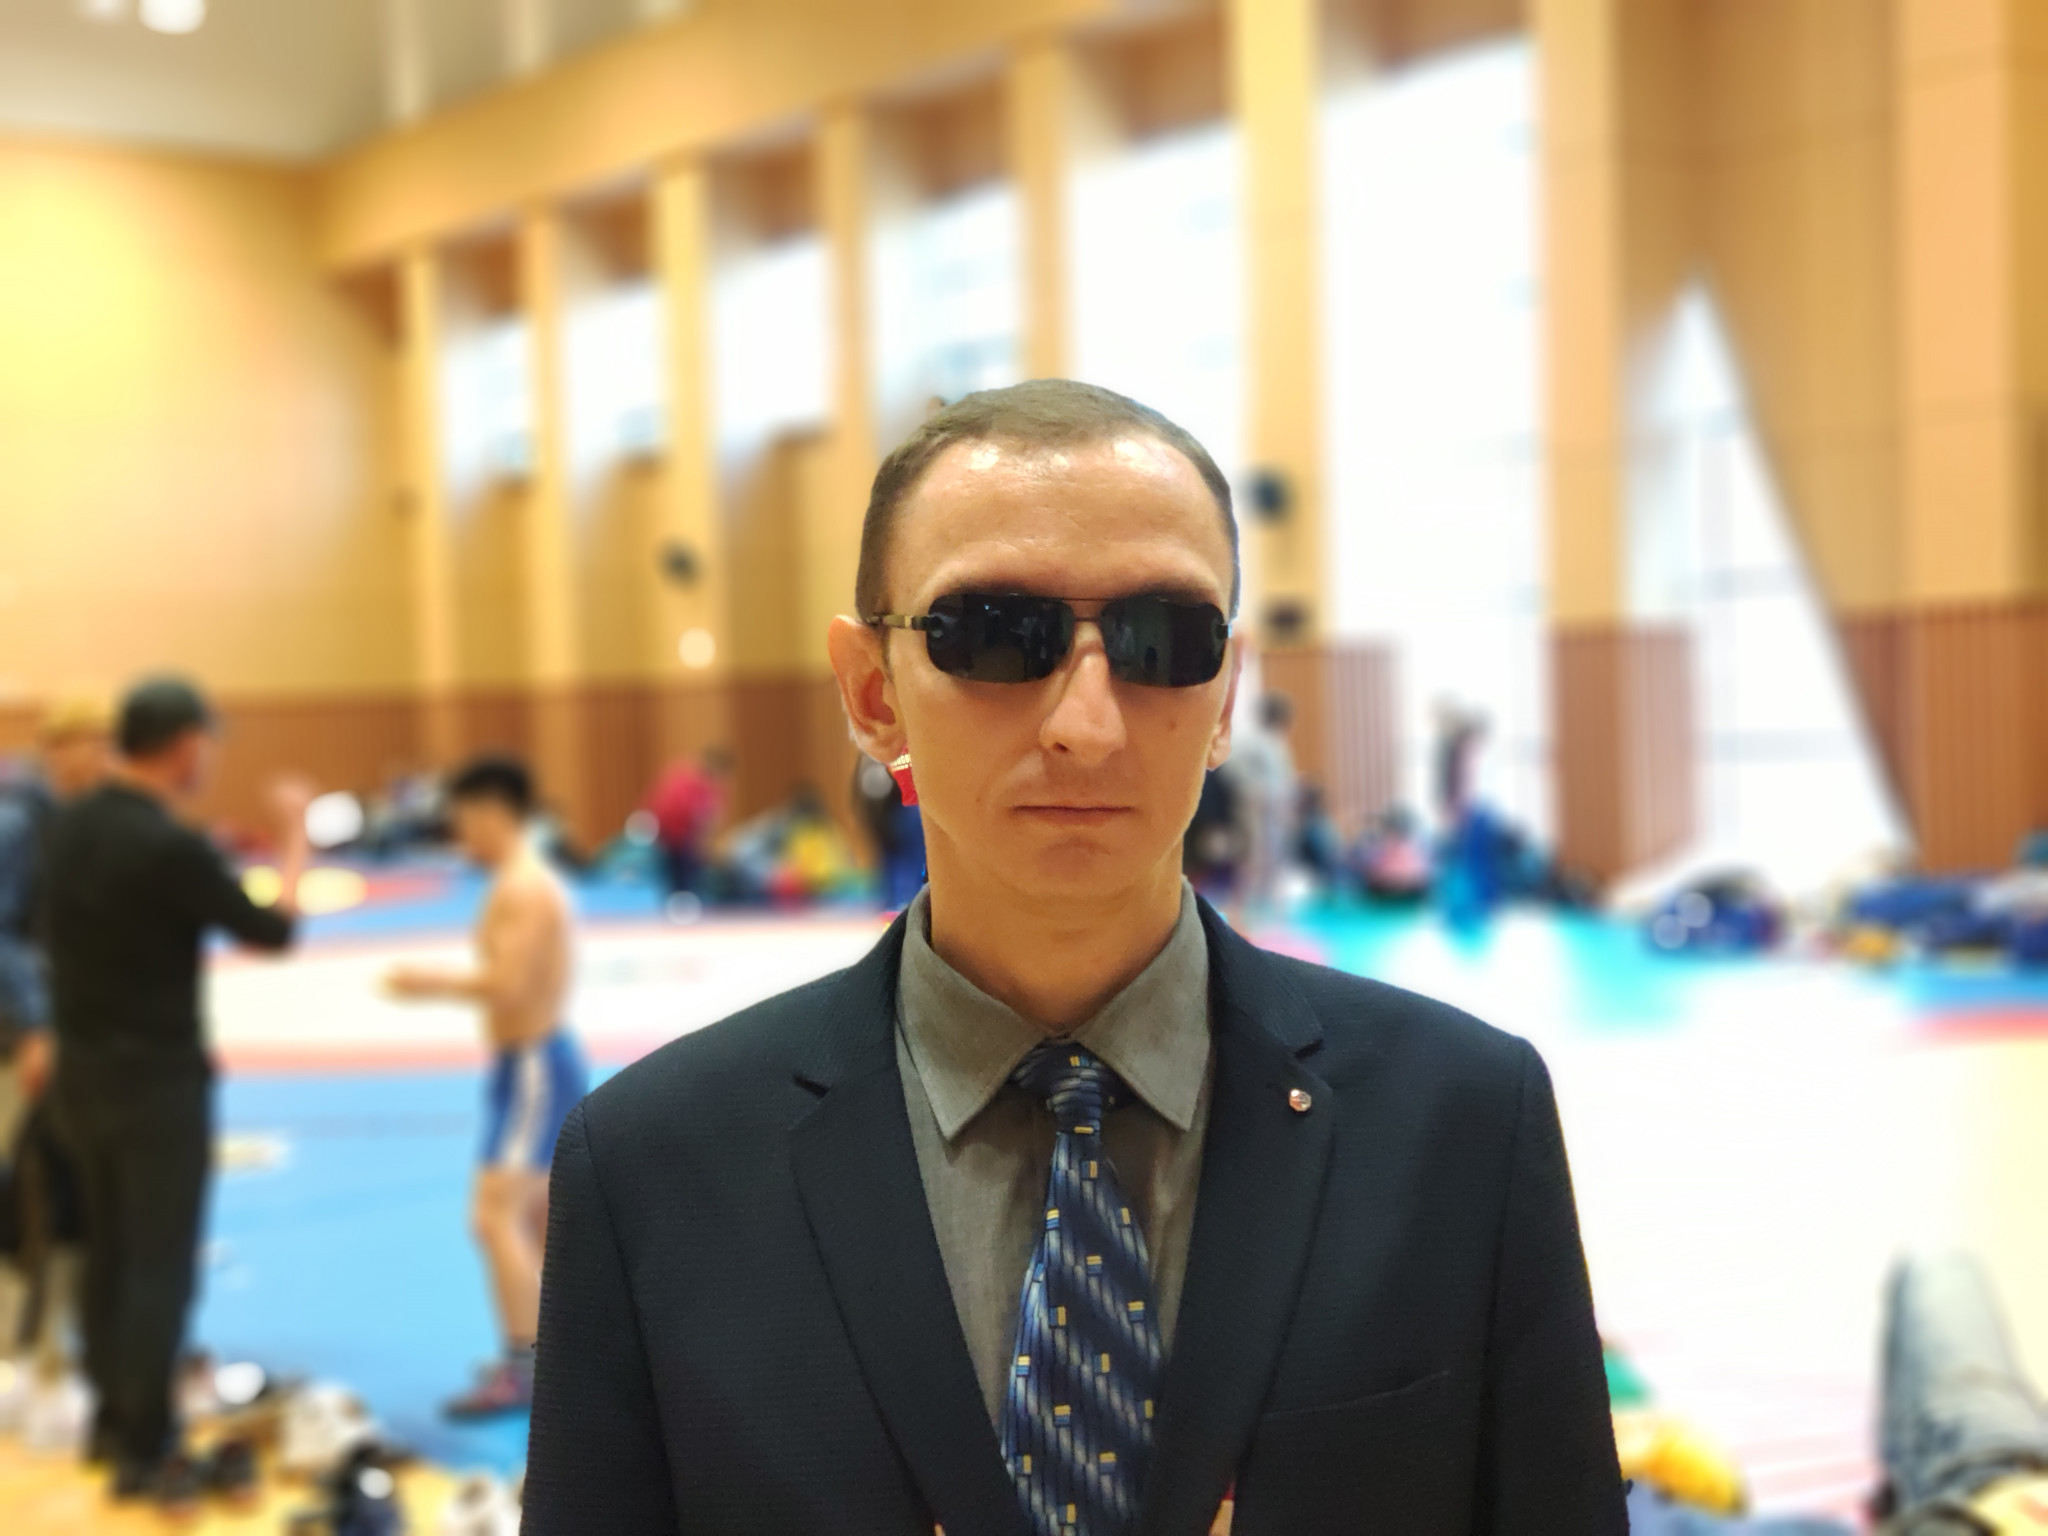 Blind sambo demonstration showcases inclusivity for all at World Championships